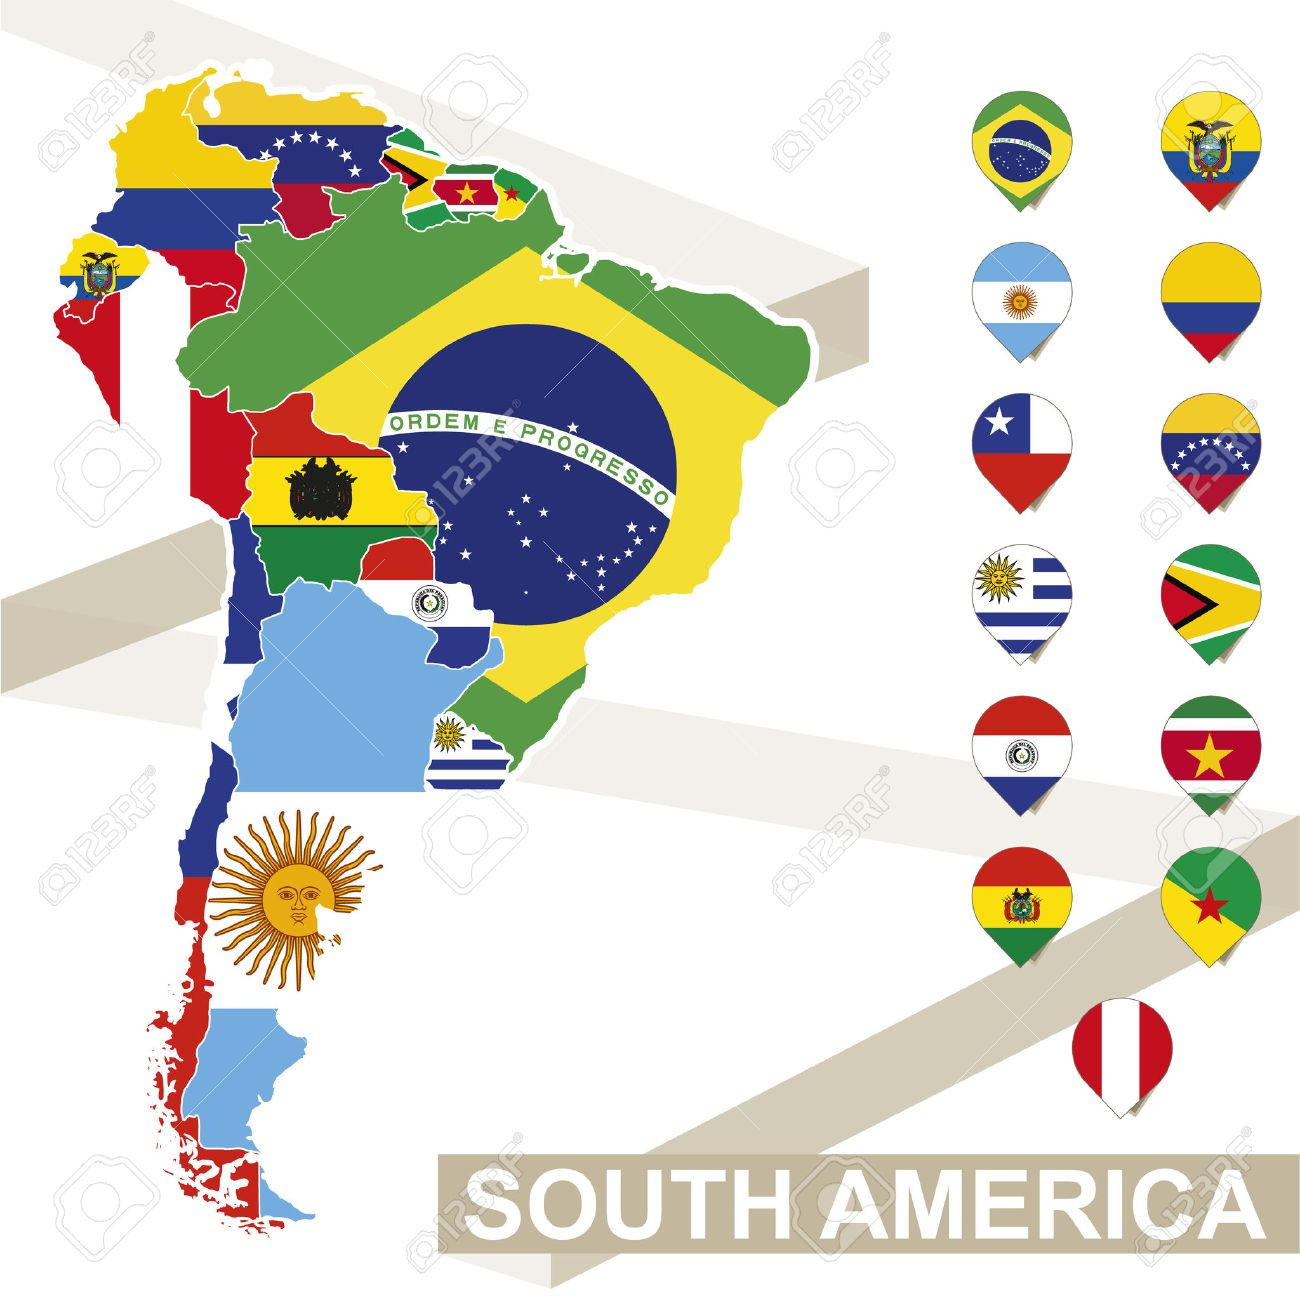 South America Map With Flags South America Map Colored In With - S america map